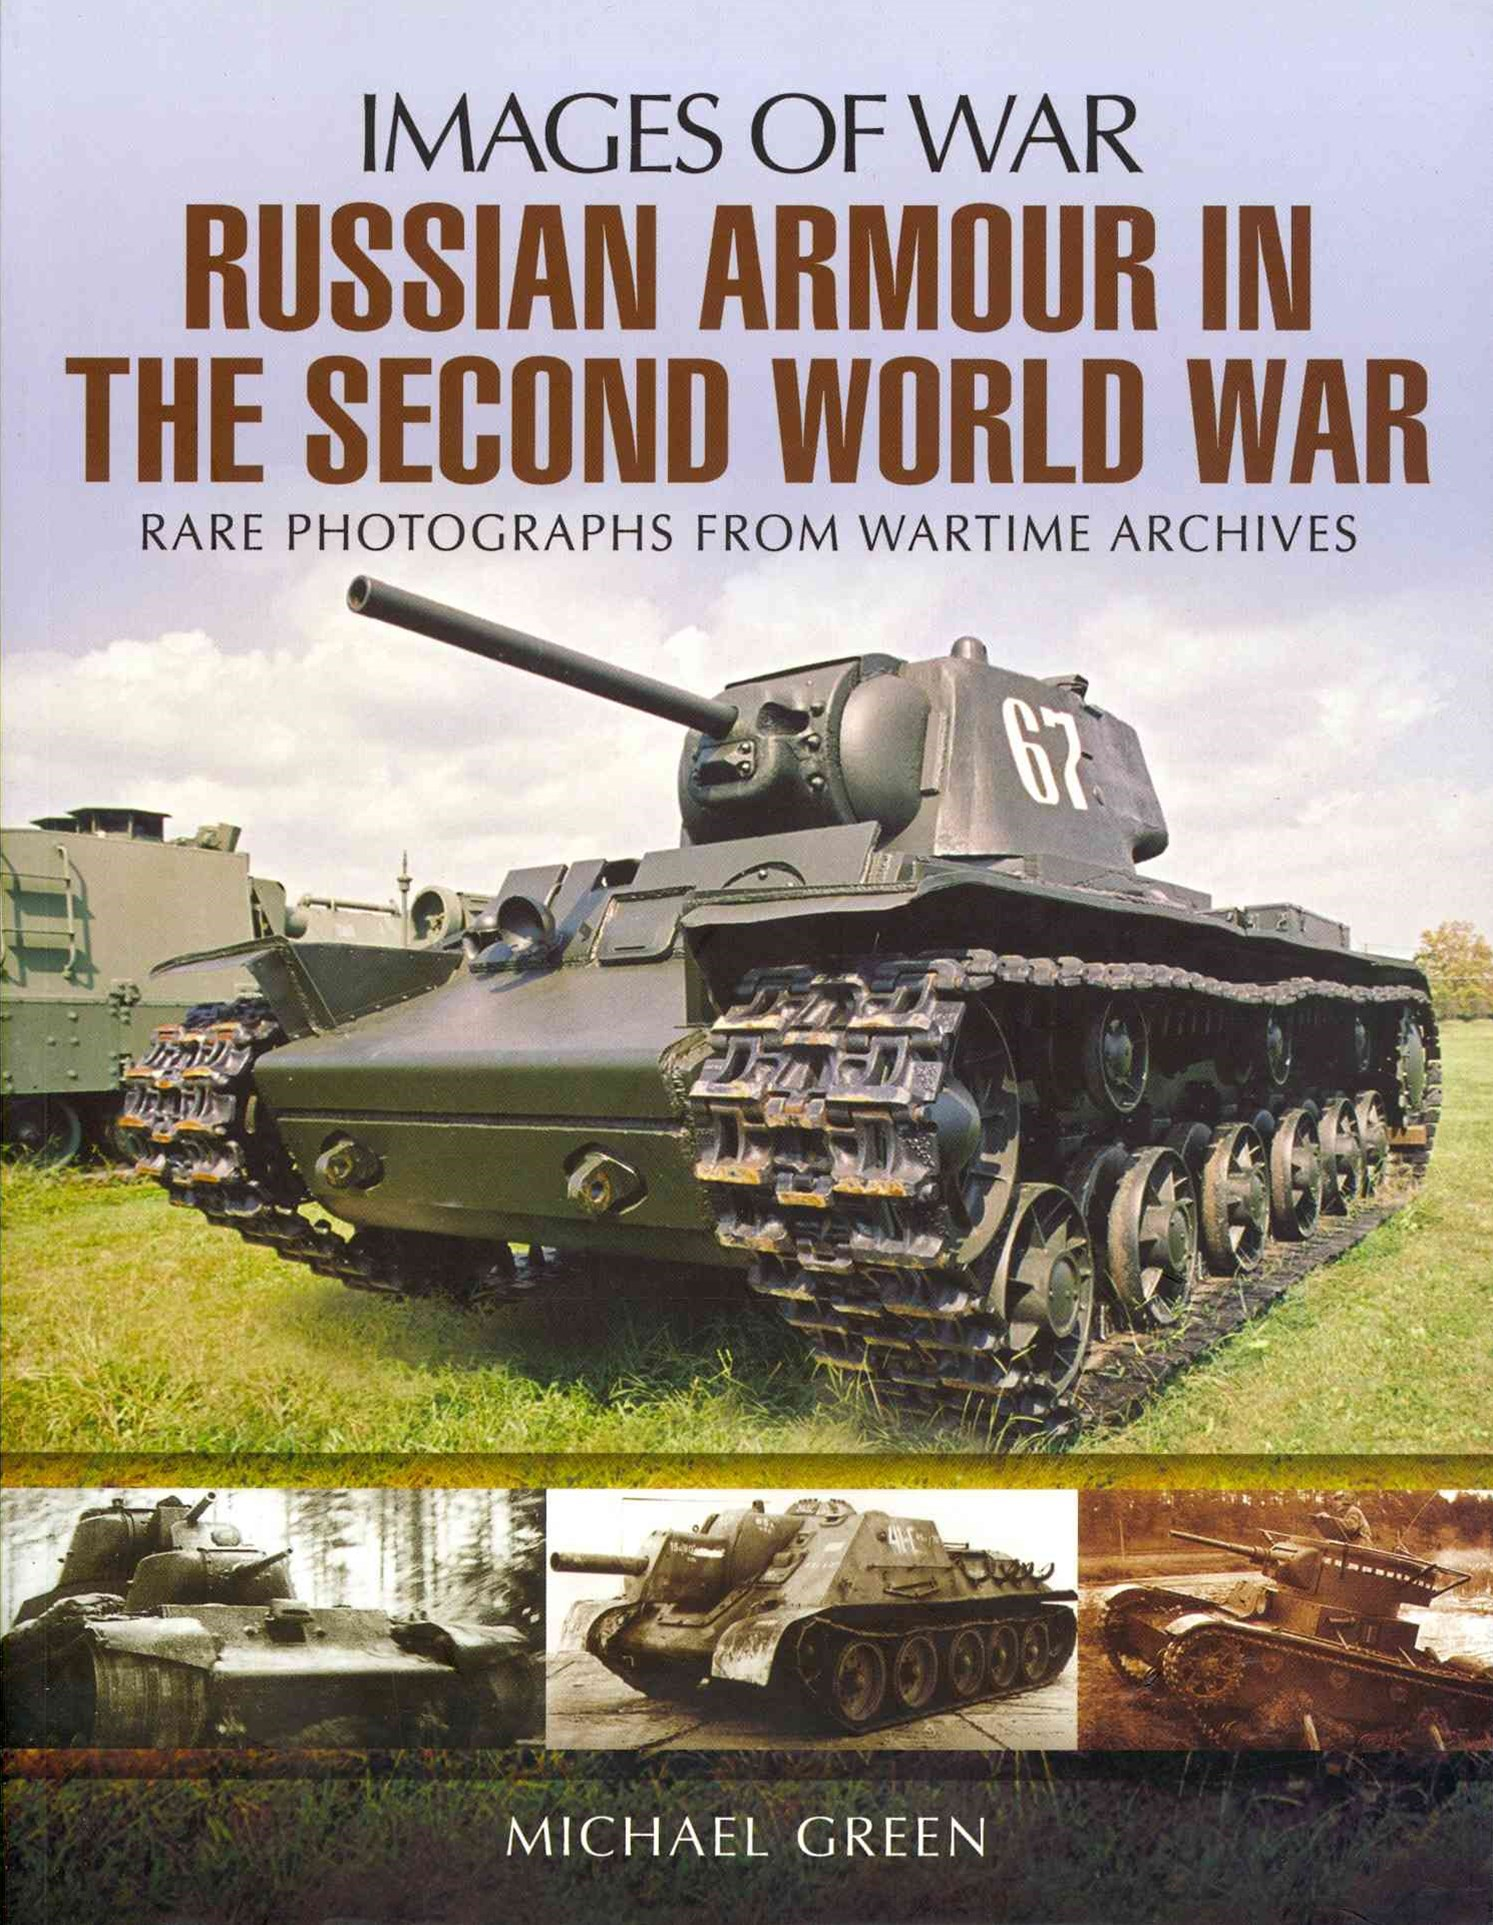 Russian Armour in the Second World War: Images of War